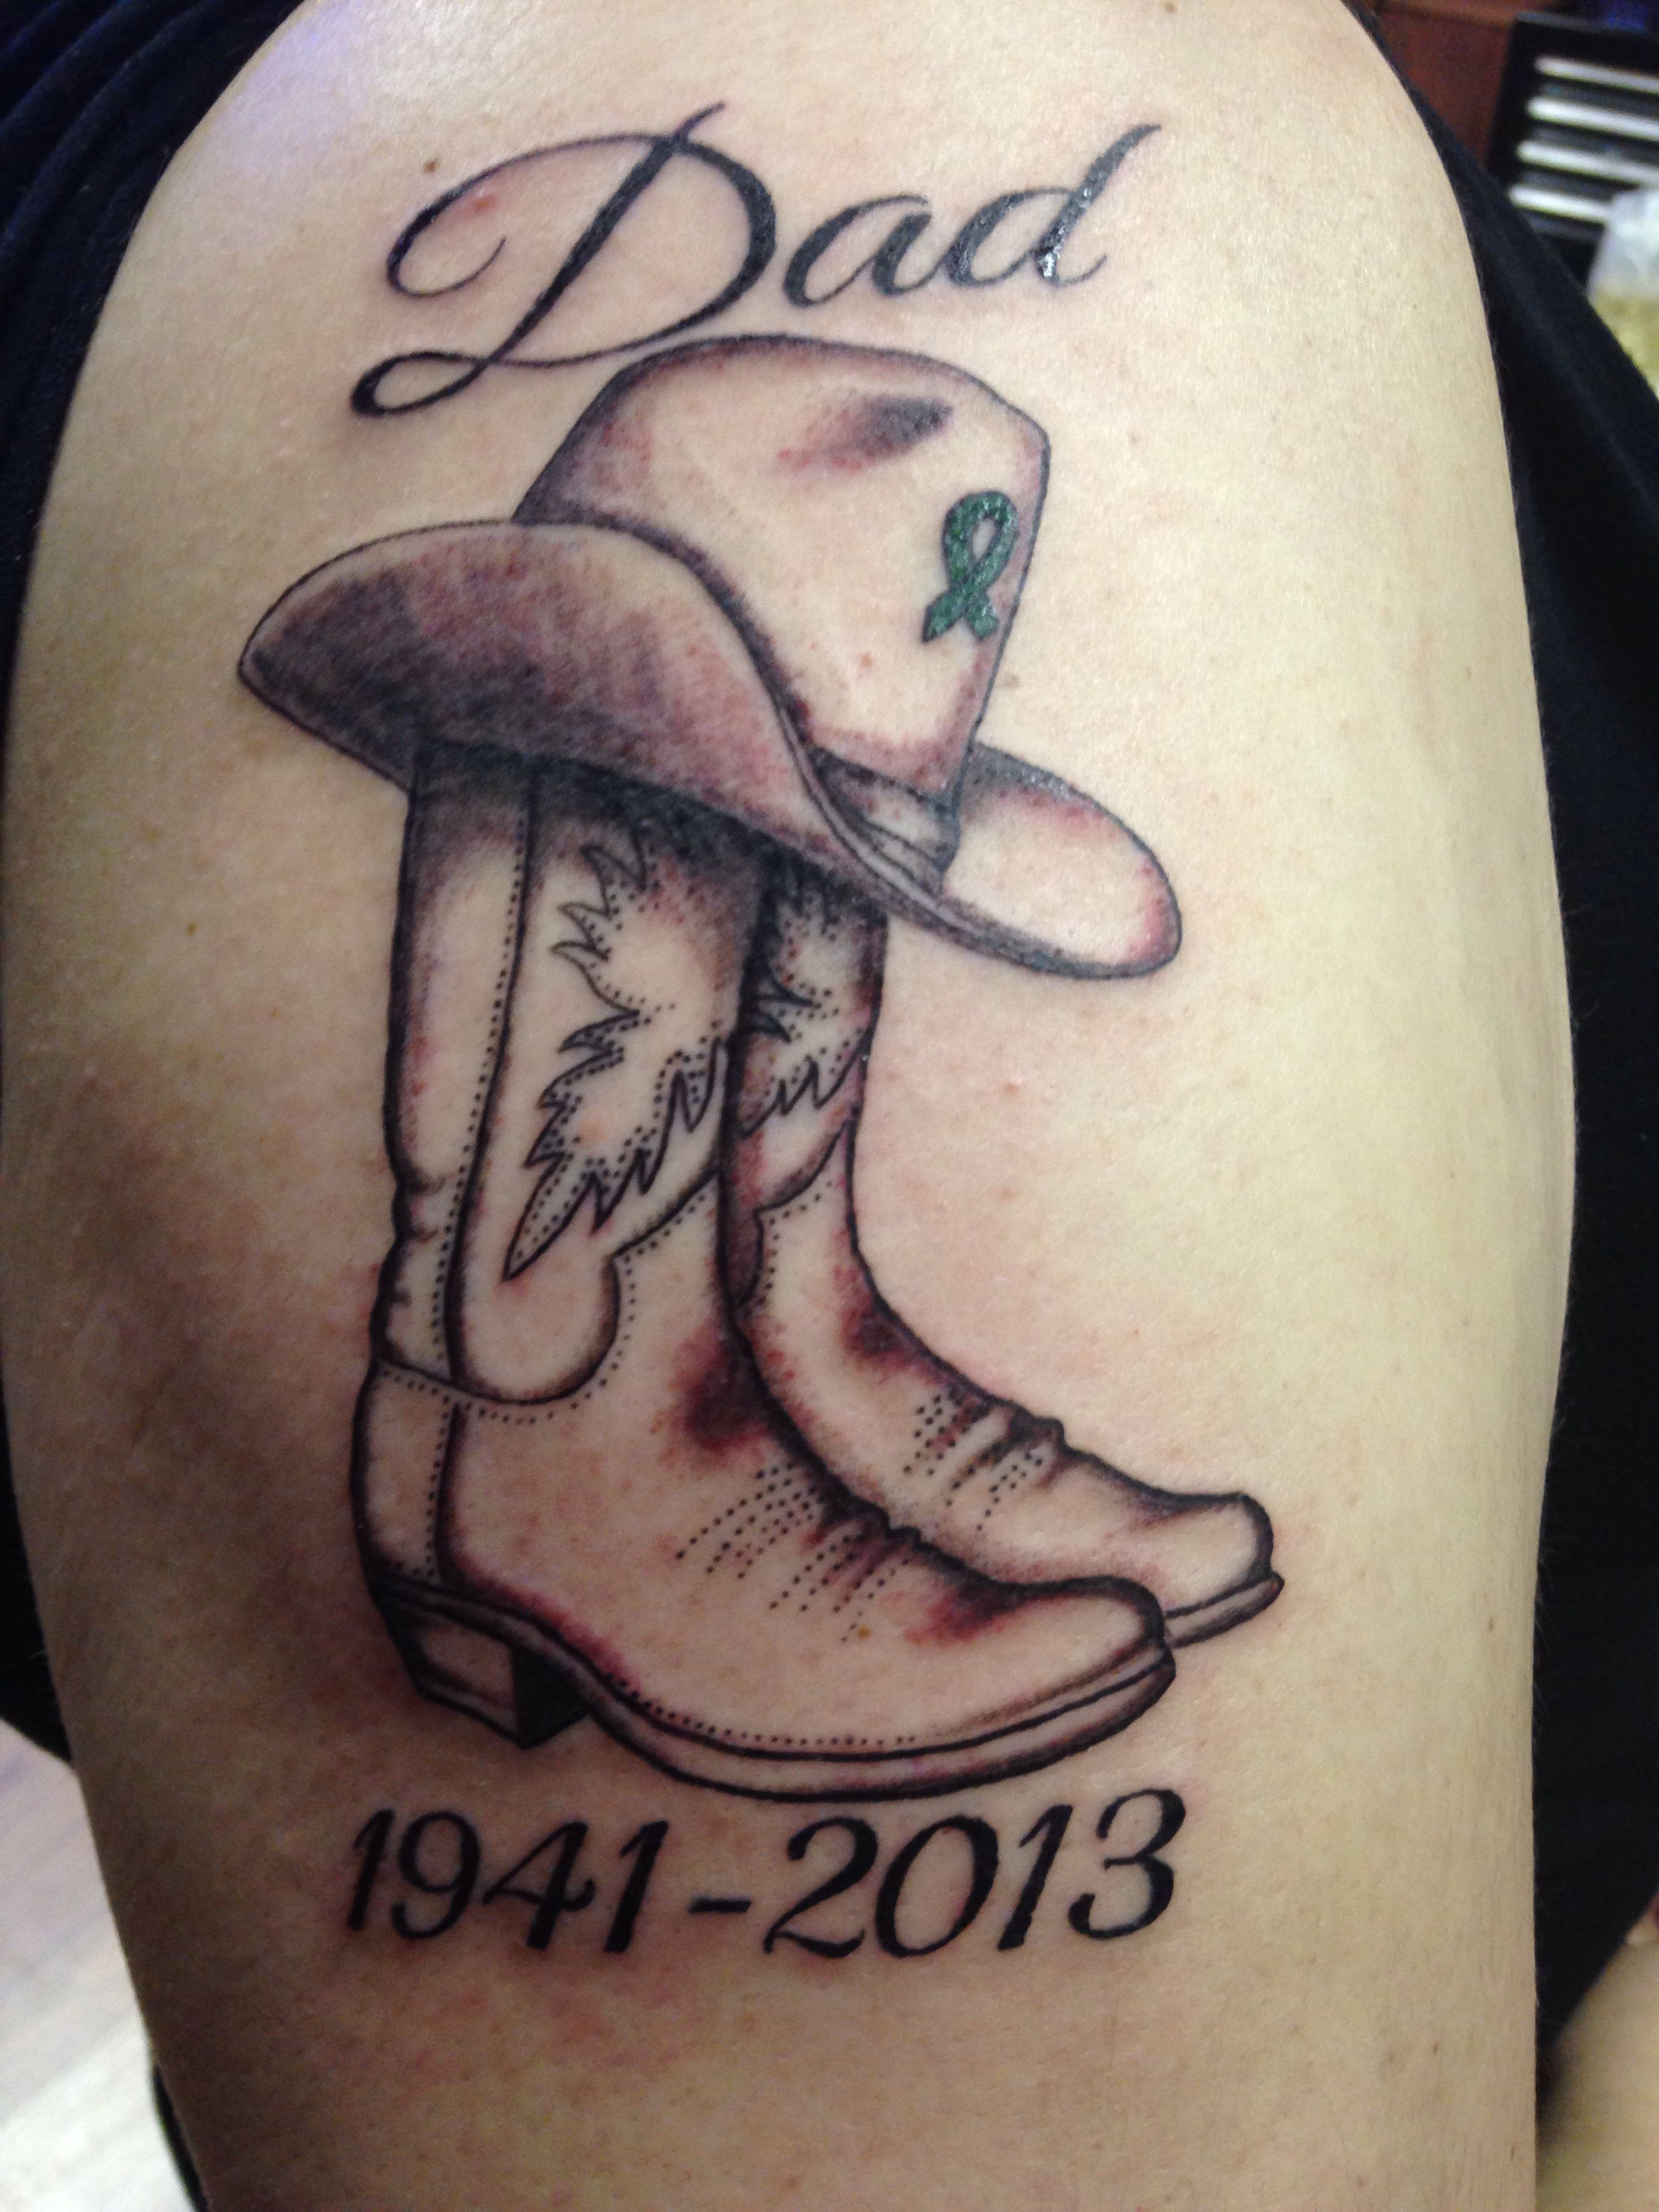 Remembrance Tattoos For Dad: Cowboy Tattoos, Tattoos For Daughters